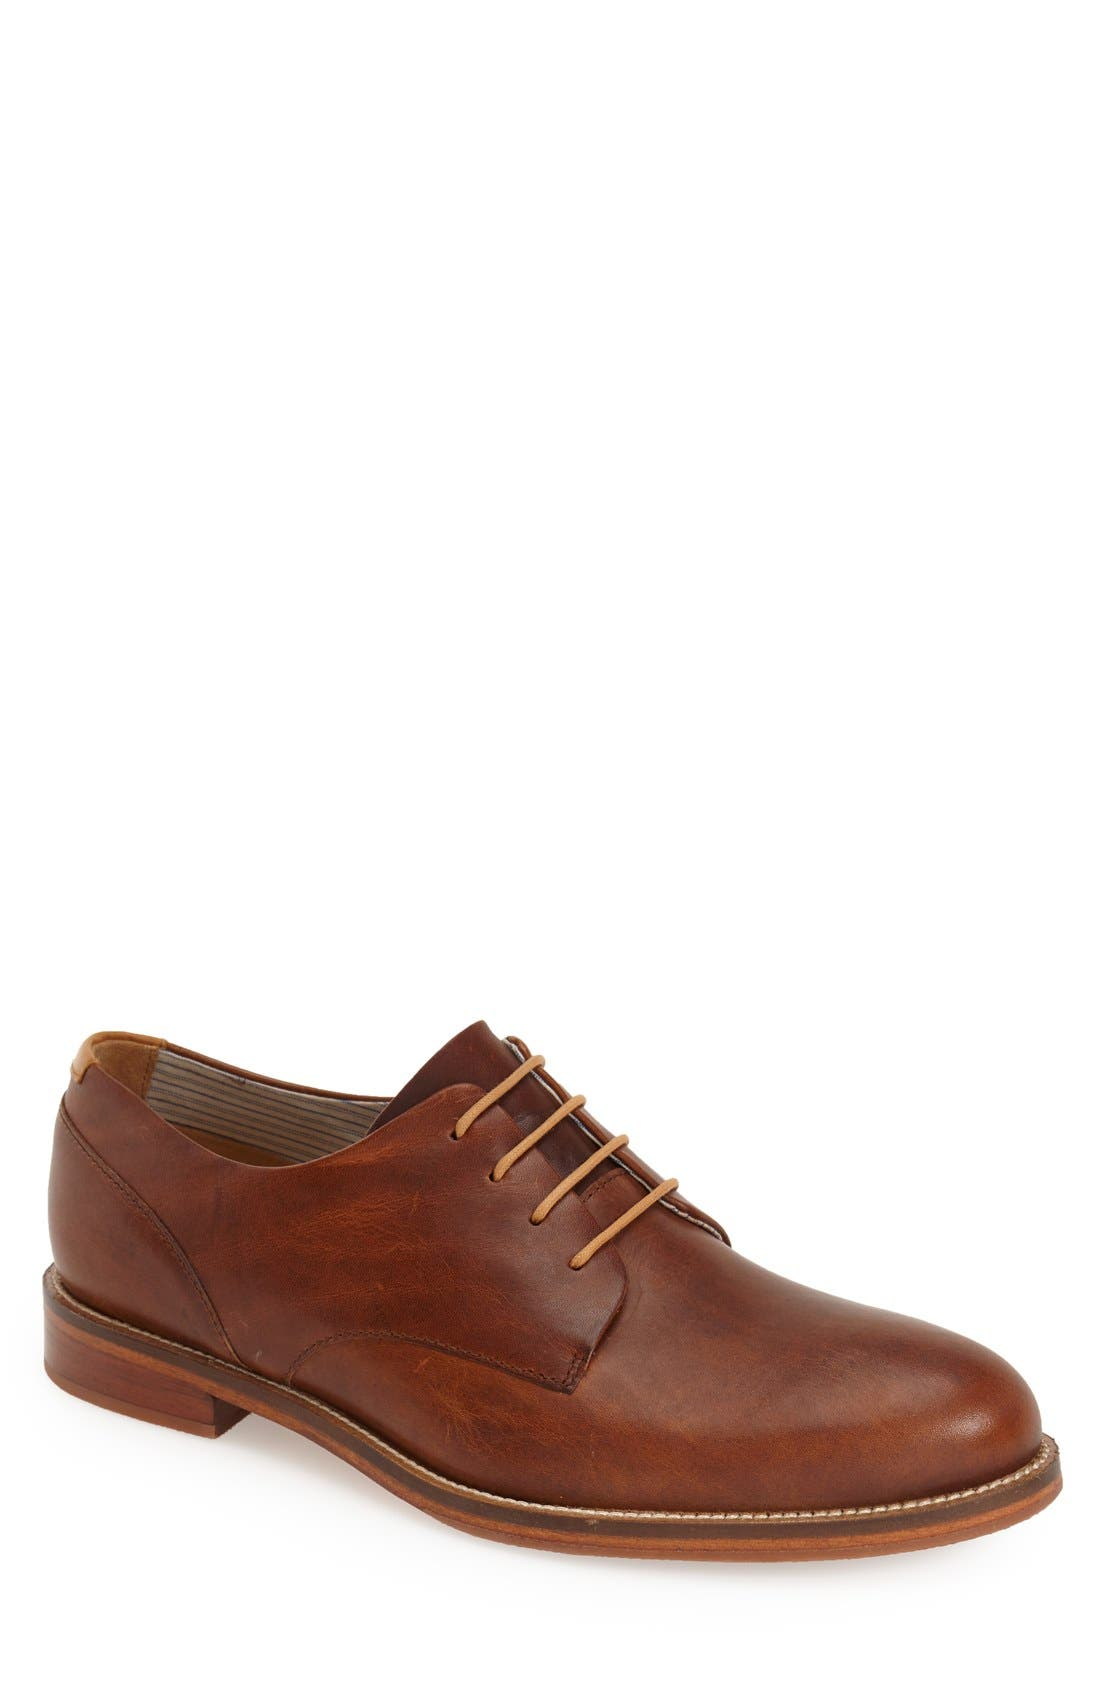 Main Image - J SHOES 'William Plus' Plain Toe Derby (Men)